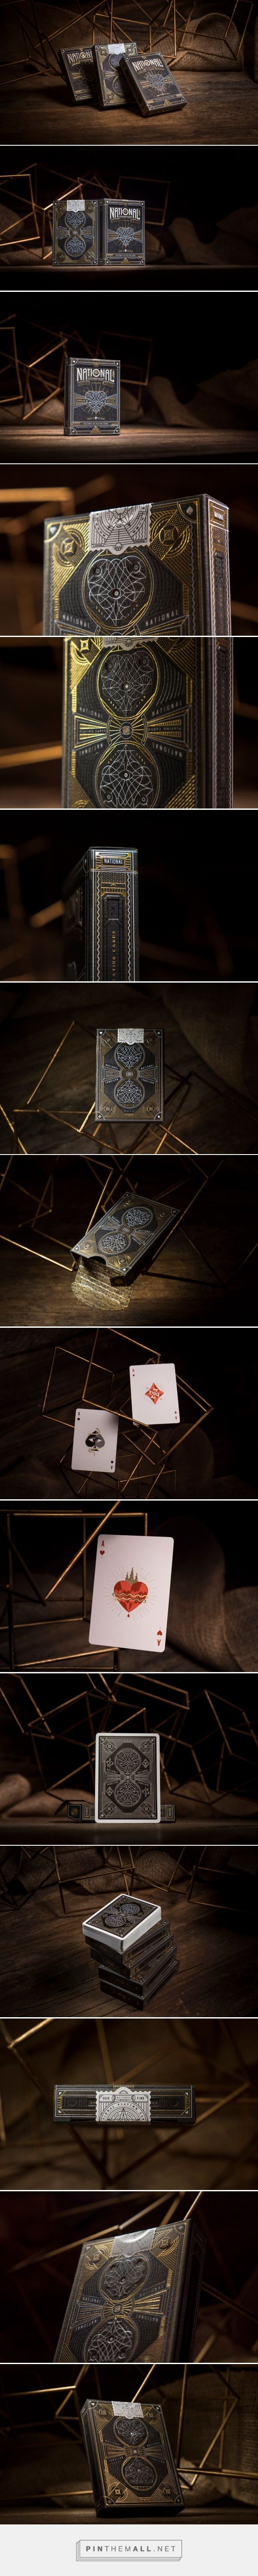 National Playing Cards packaging design by Harold Apples - http://www.packagingoftheworld.com/2017/04/national-playing-cards.html